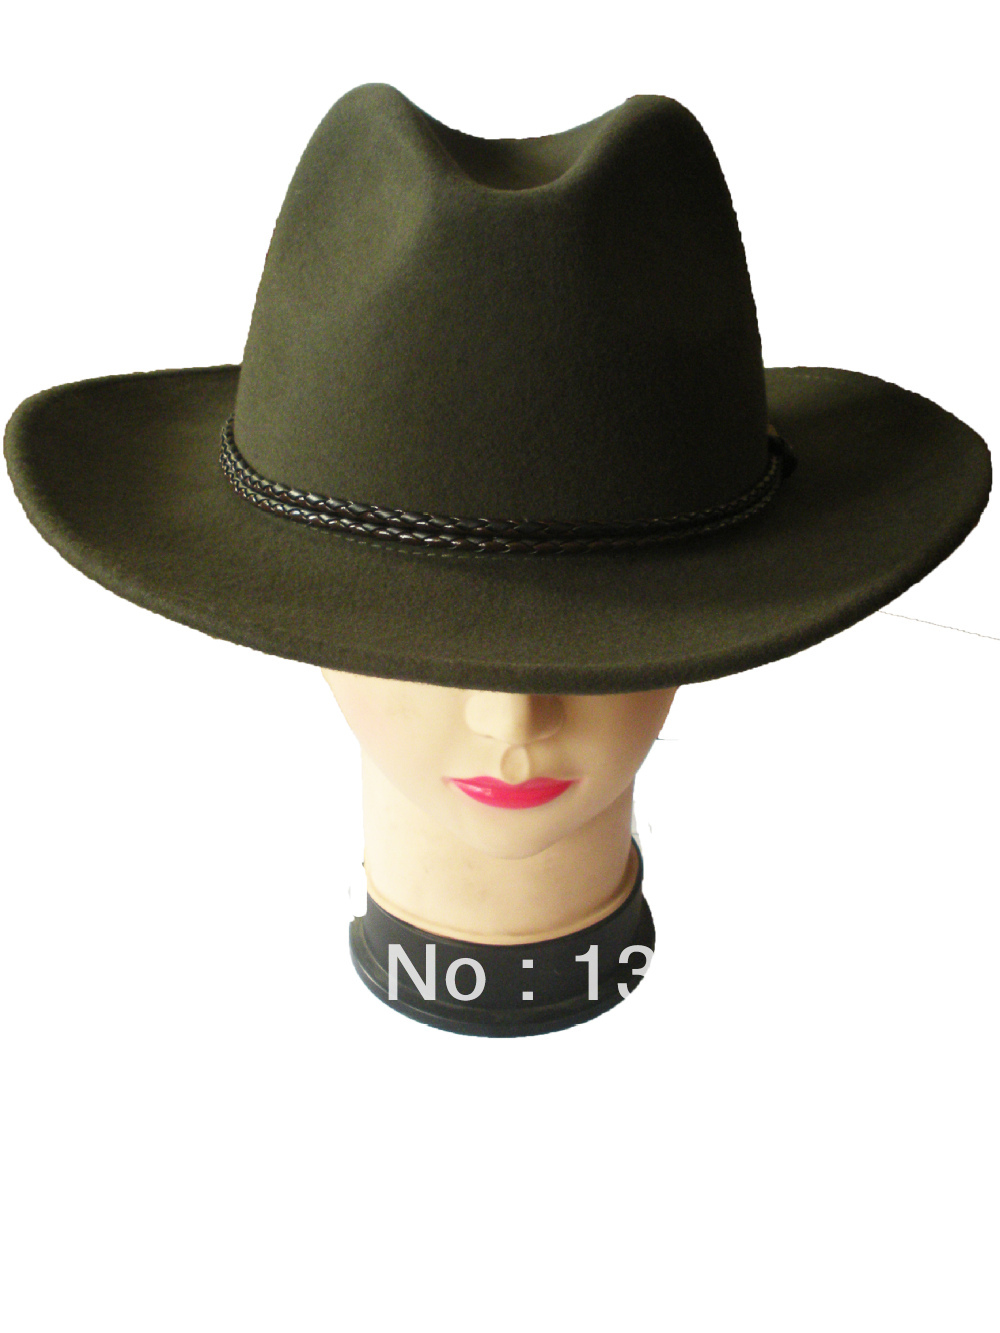 Special wholesale traditional wide brim green cowboy hats for men and ladies100% felt wear in winter ,fall and spring and topee(China (Mainland))